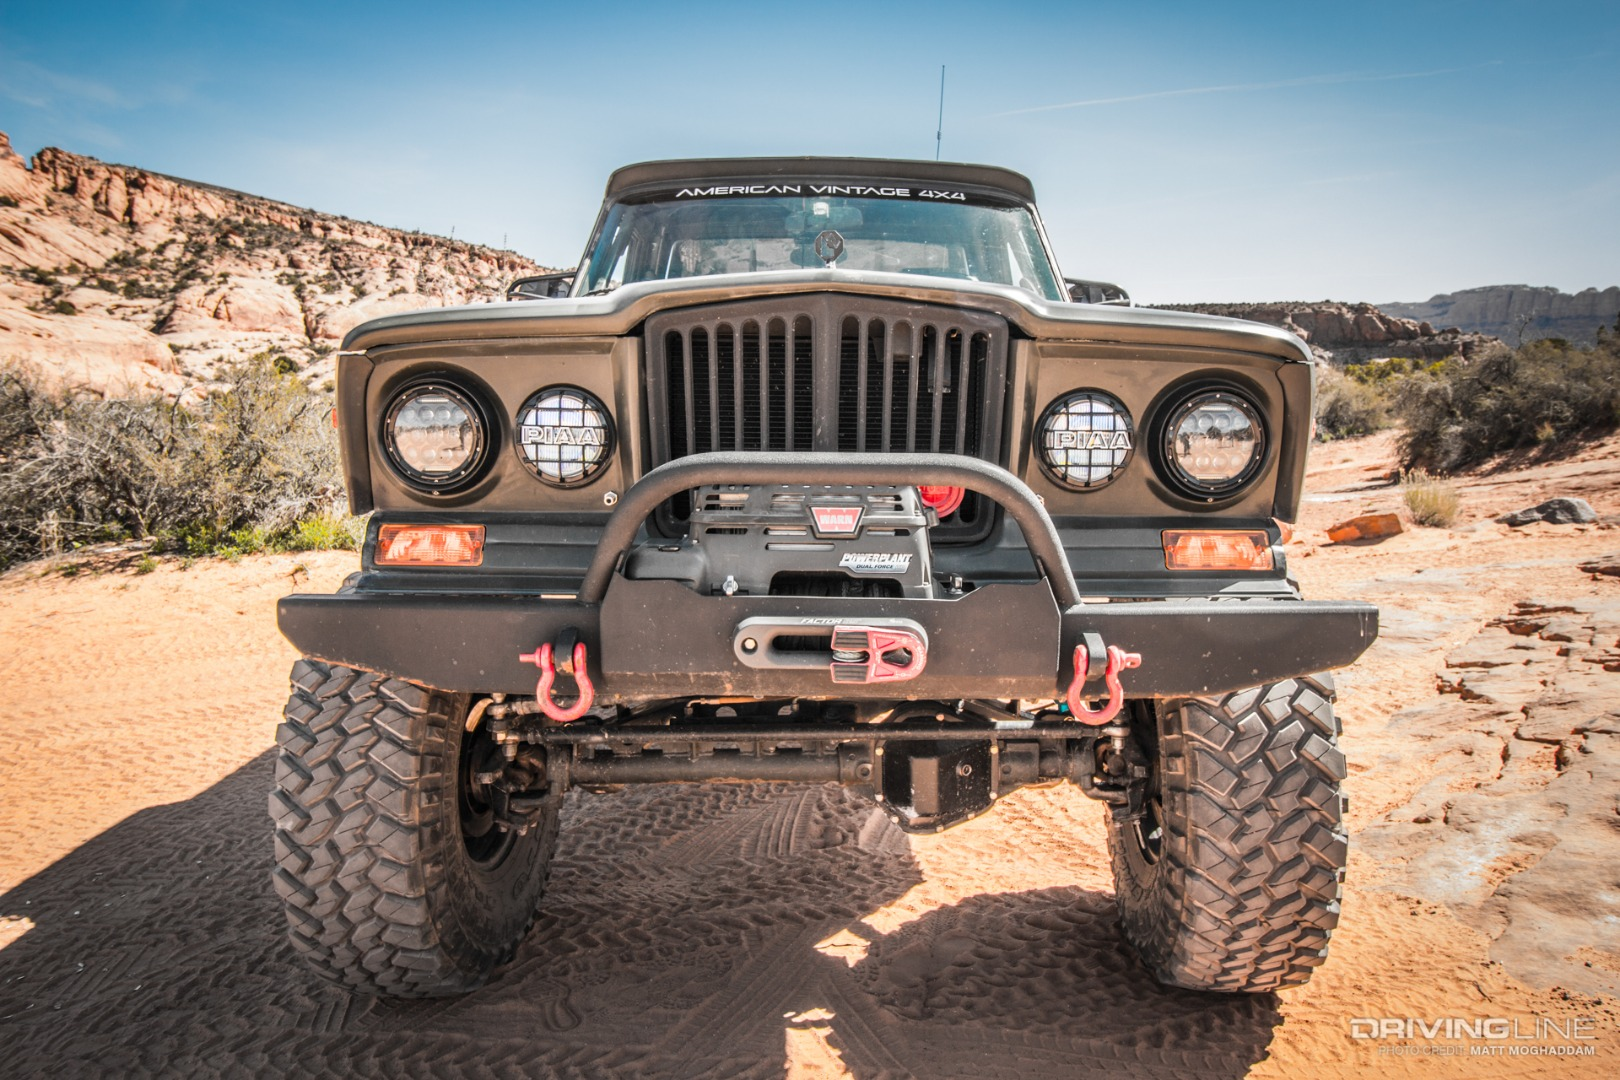 Enter The Dragon A Closer Look At American Vintage 4x4 S Komodo